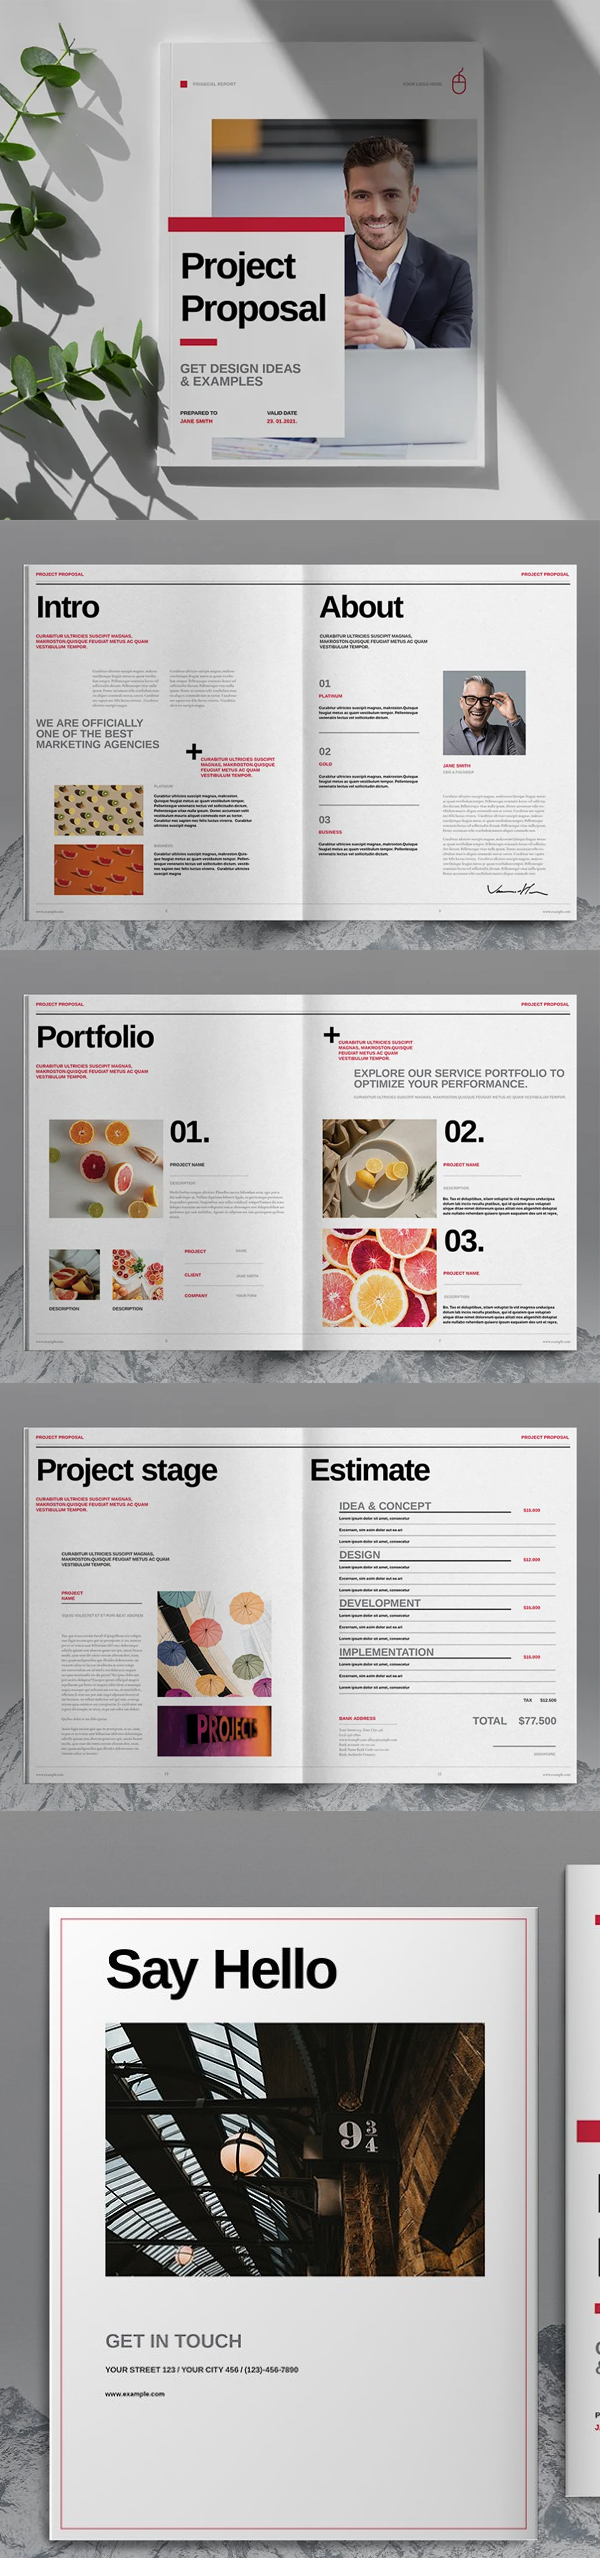 Modern Project Proposal Template